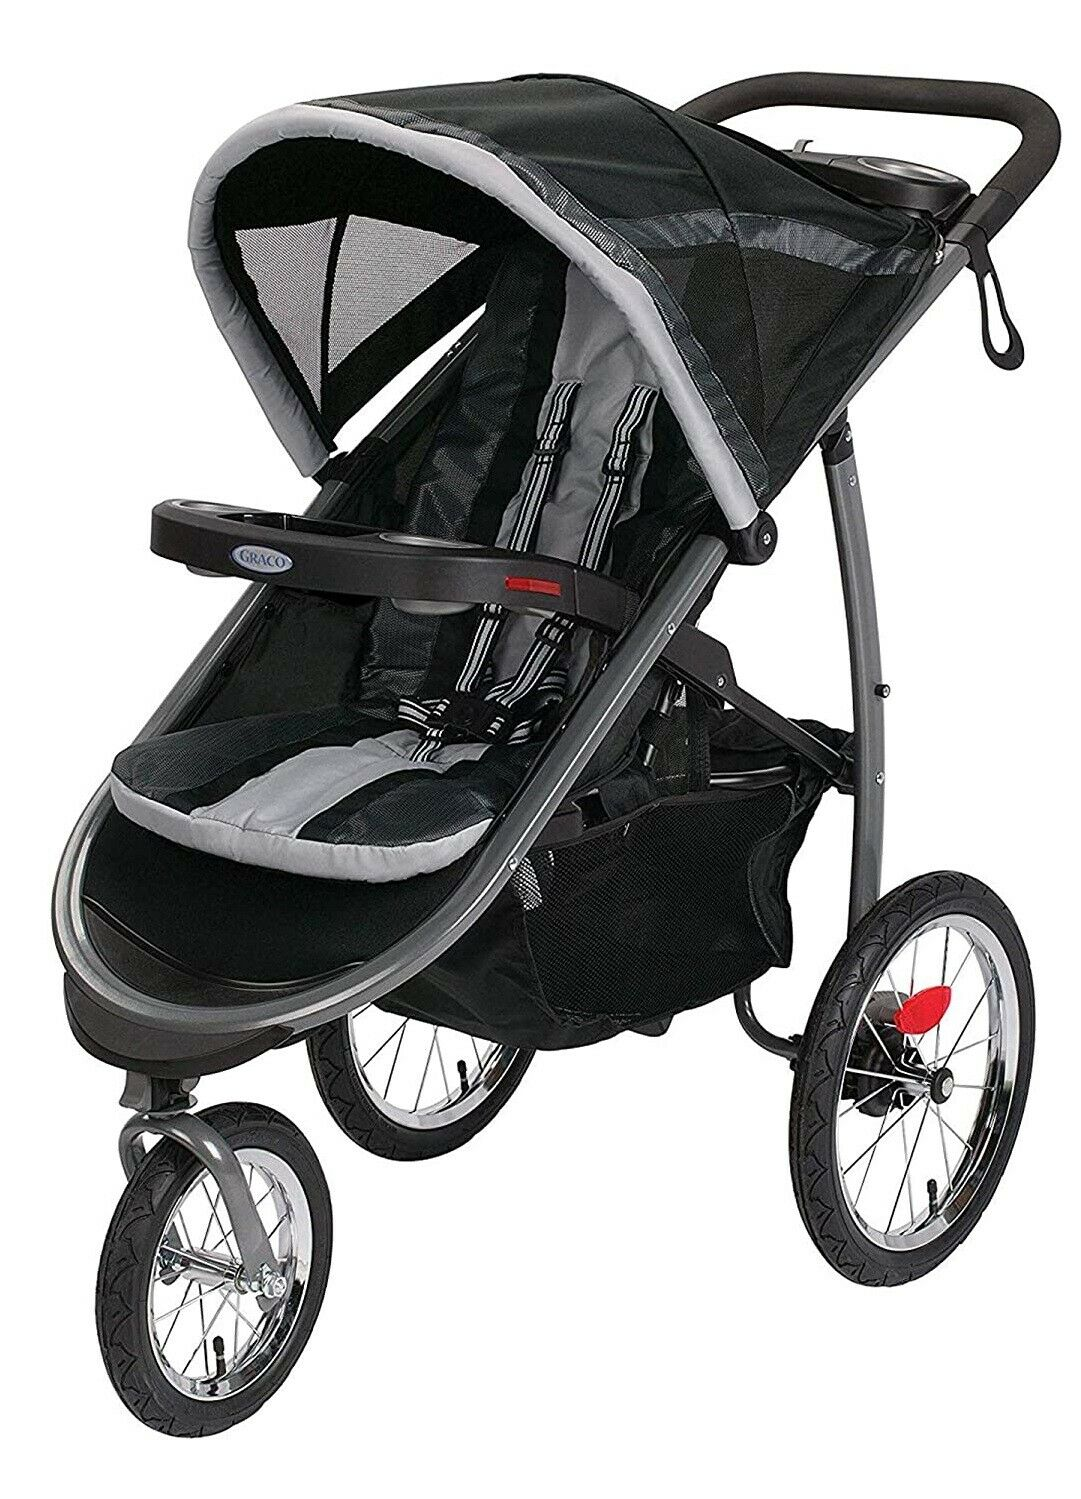 2015 Graco Fastaction Fold Jogger Click Connect Stroller,